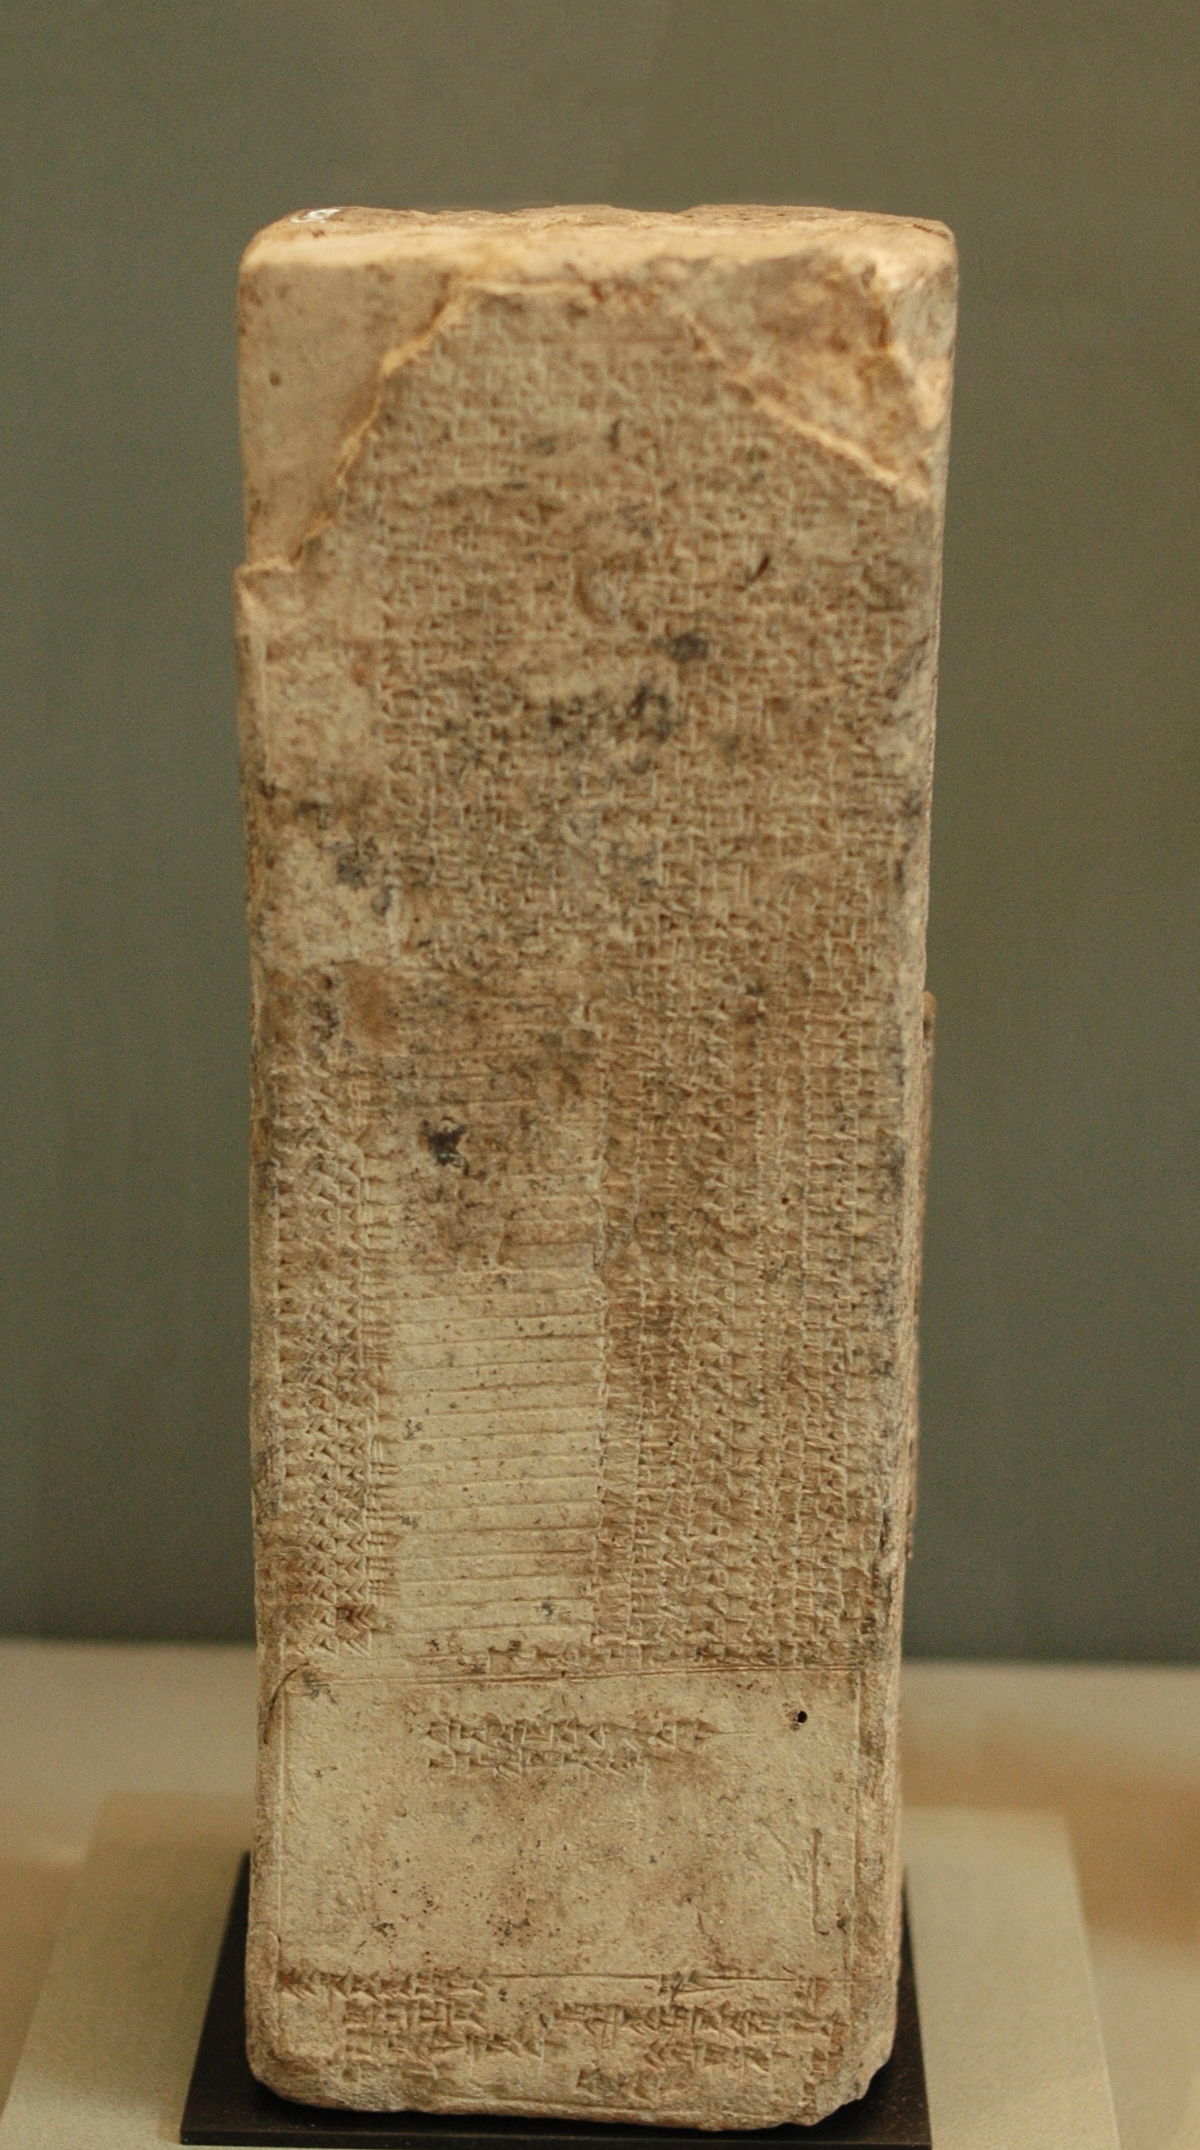 1aa - stela artefact, Babylonian Kings List, kingship was brought down from Heaven to Earth by Enlil, he created the position of power for their mixed-breed offspring, they were bigger, stronger, smarter, lived longer, & had the royal blood mix from the gods, they were well supported by them in every way